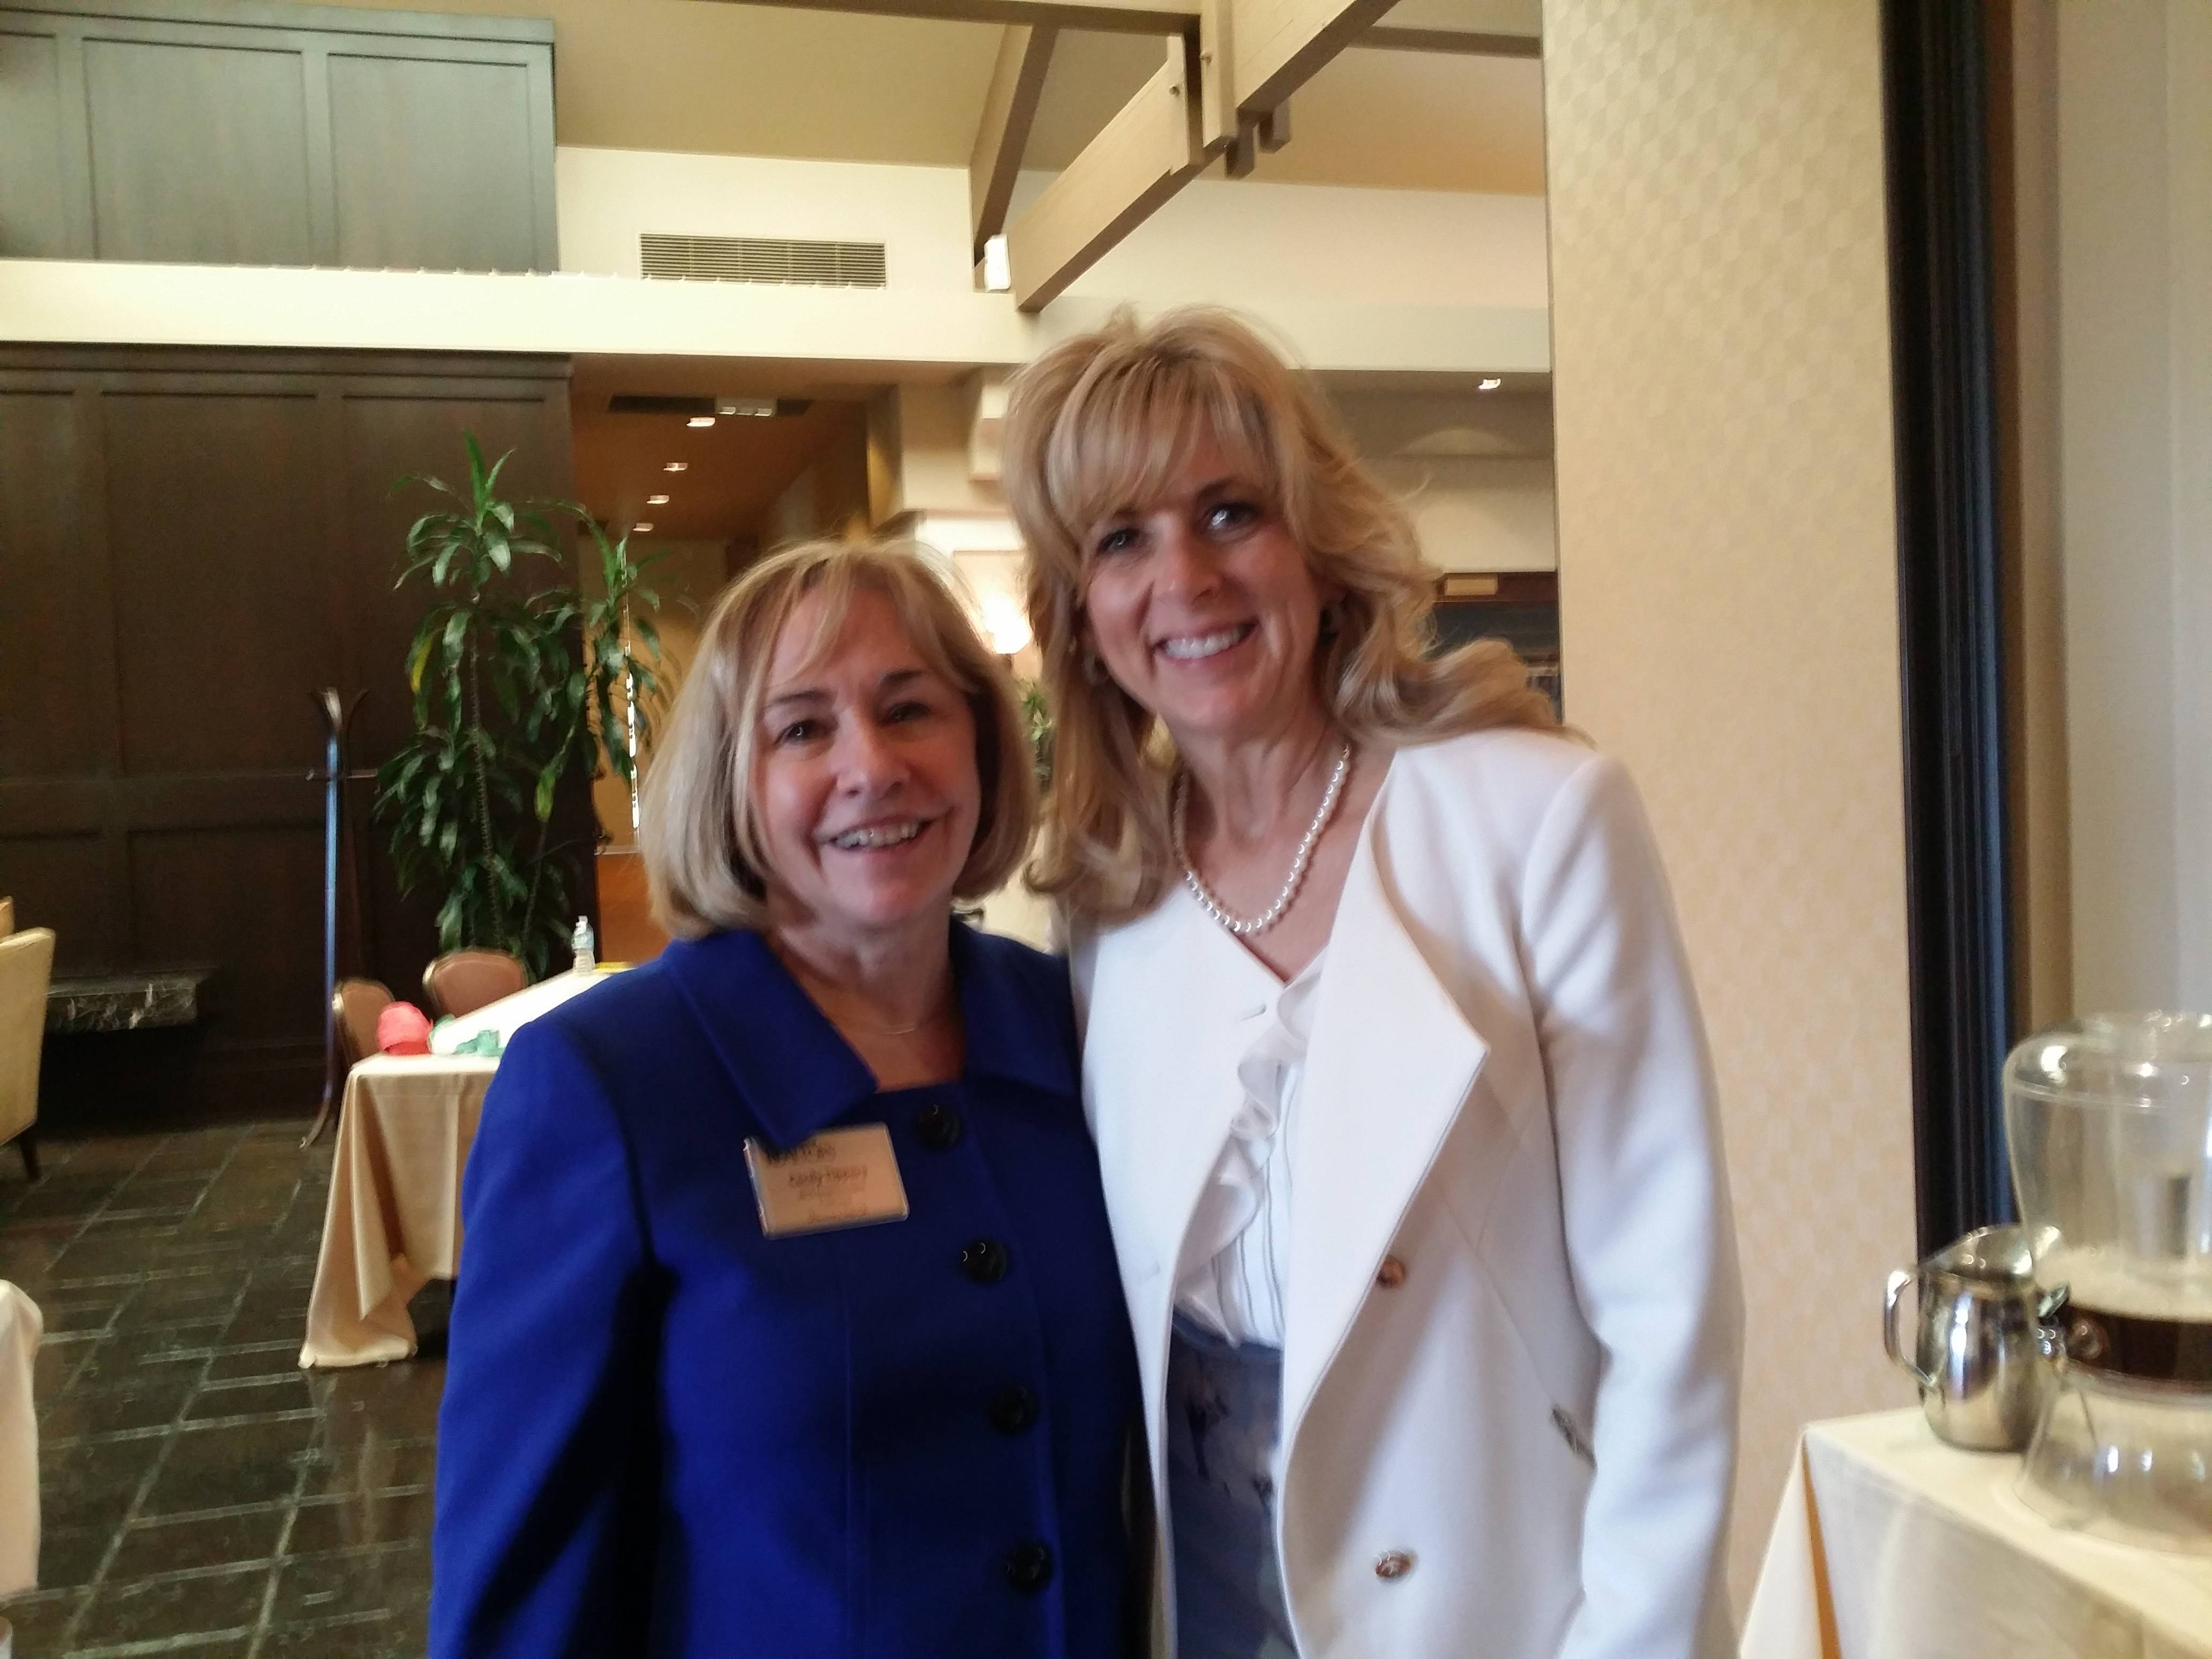 Women's Council of REALTORS® Installation for an Exciting Year in 2016